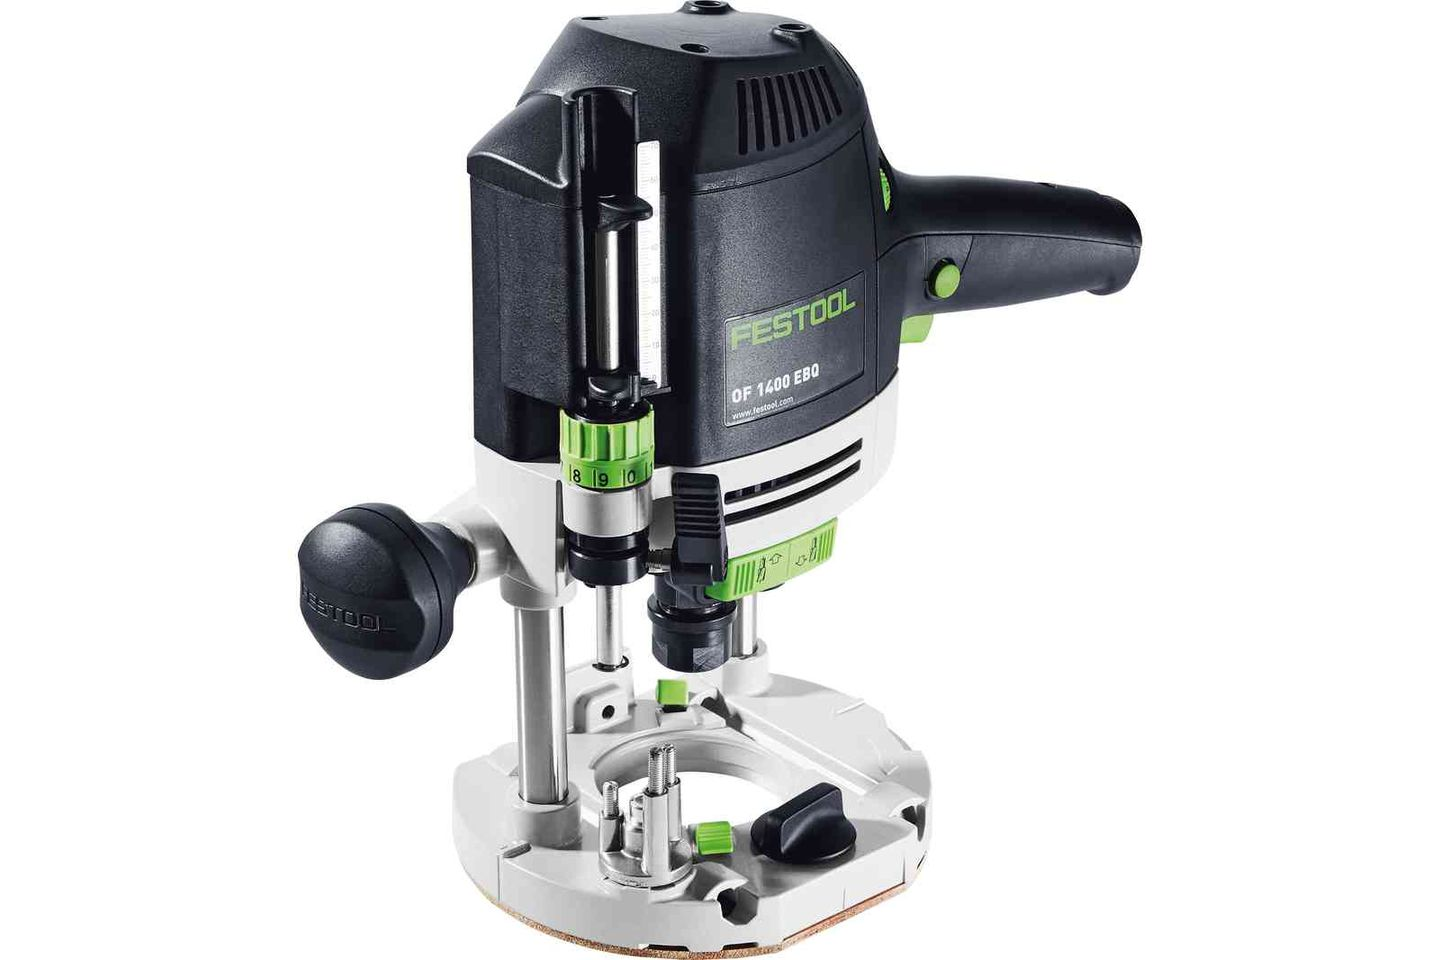 Imagine  Festool Masina De Frezat Of 1400 Ebq plus